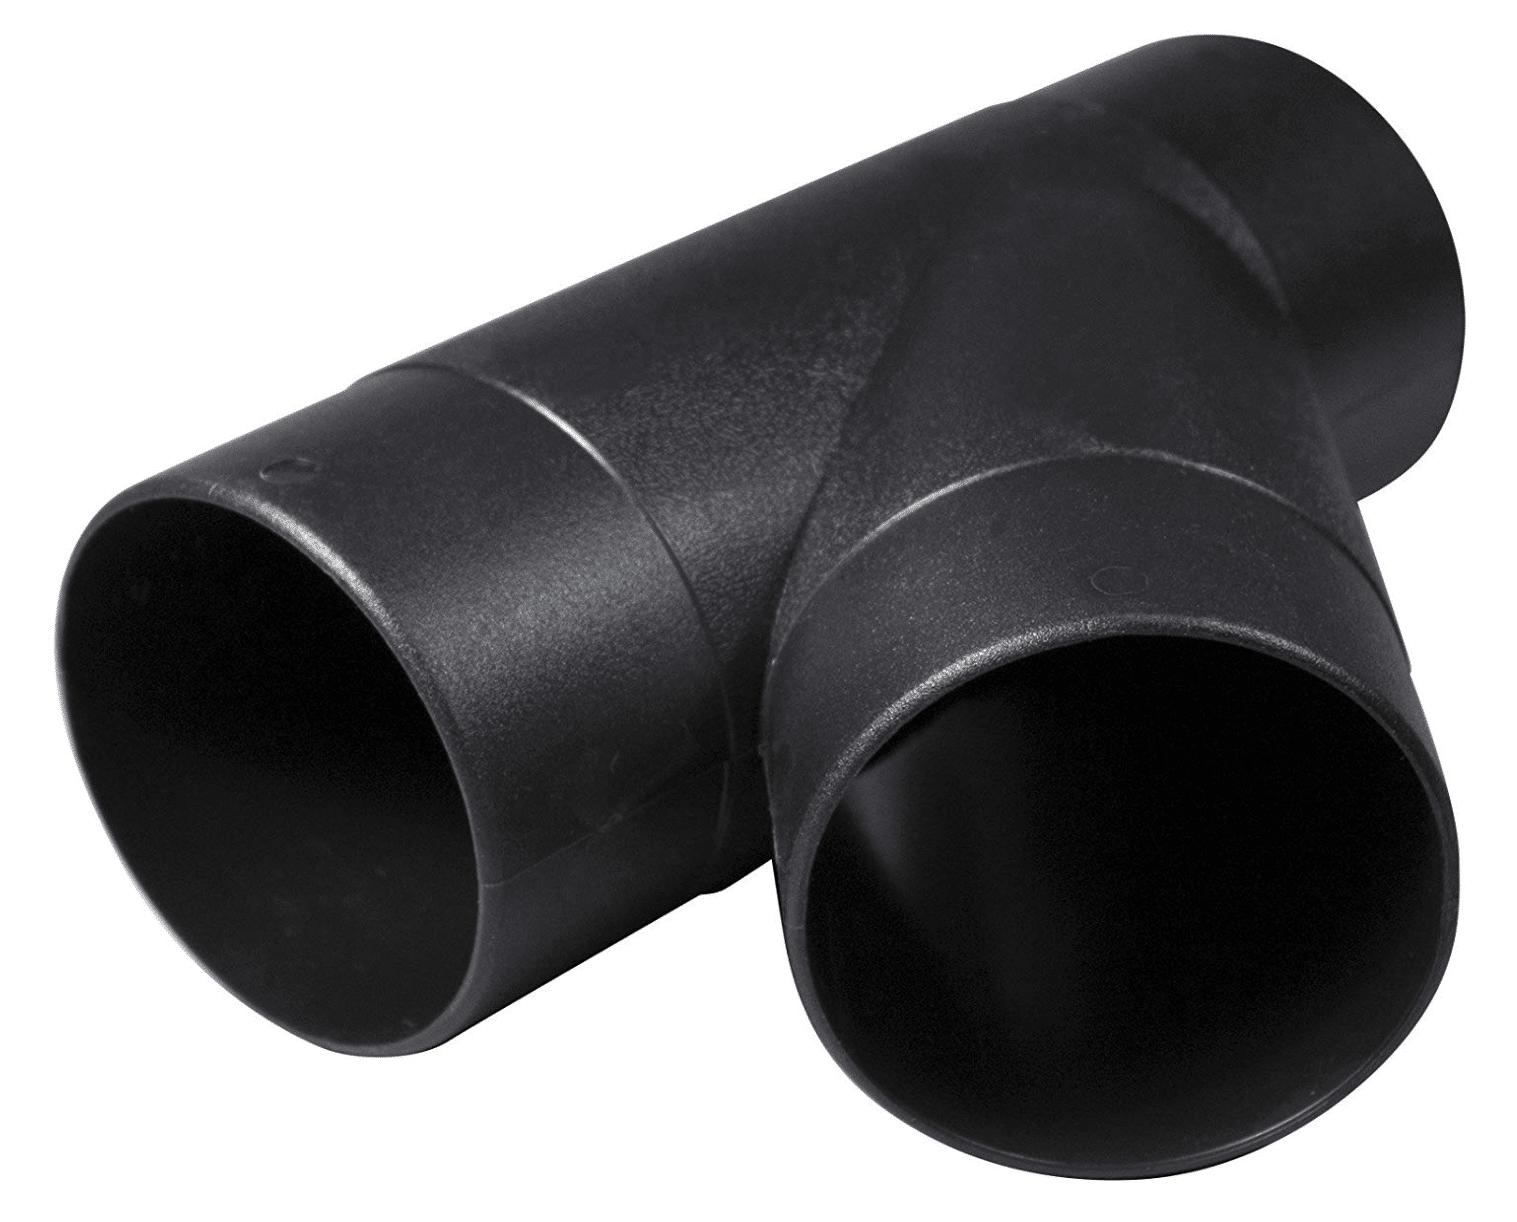 Dust collection fittings